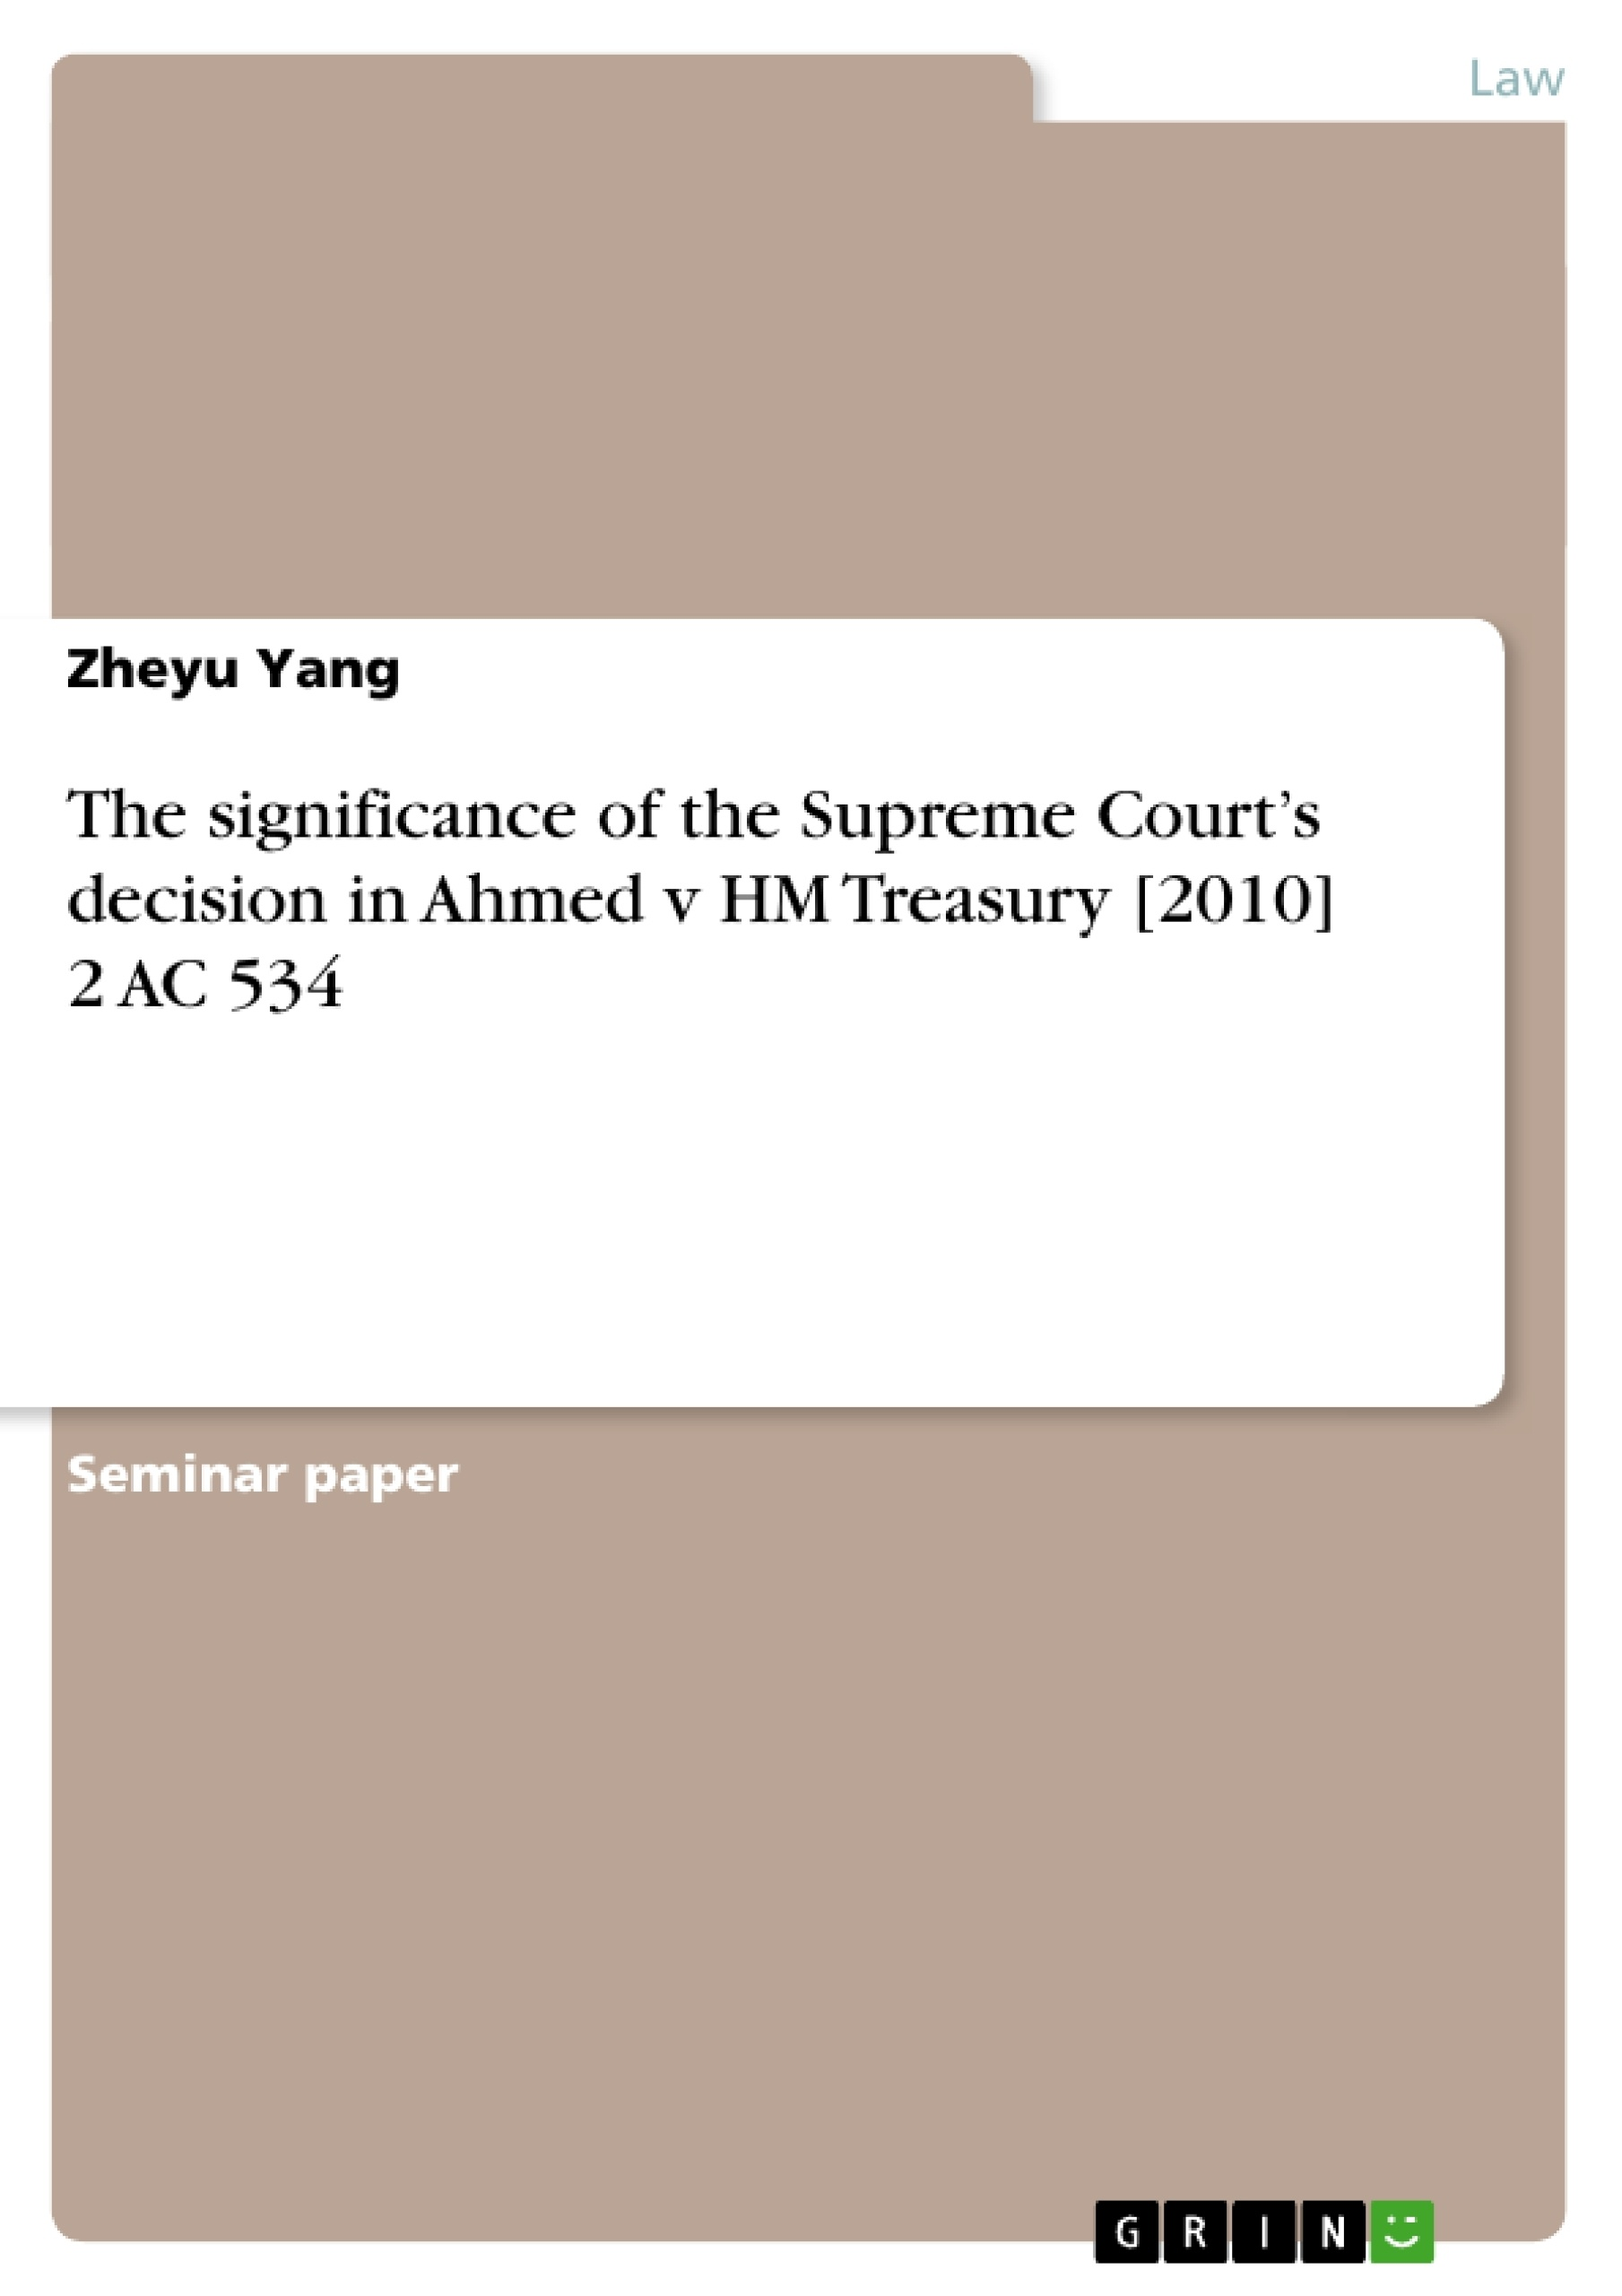 Title: The significance of the Supreme Court's decision in Ahmed v HM Treasury [2010] 2 AC 534